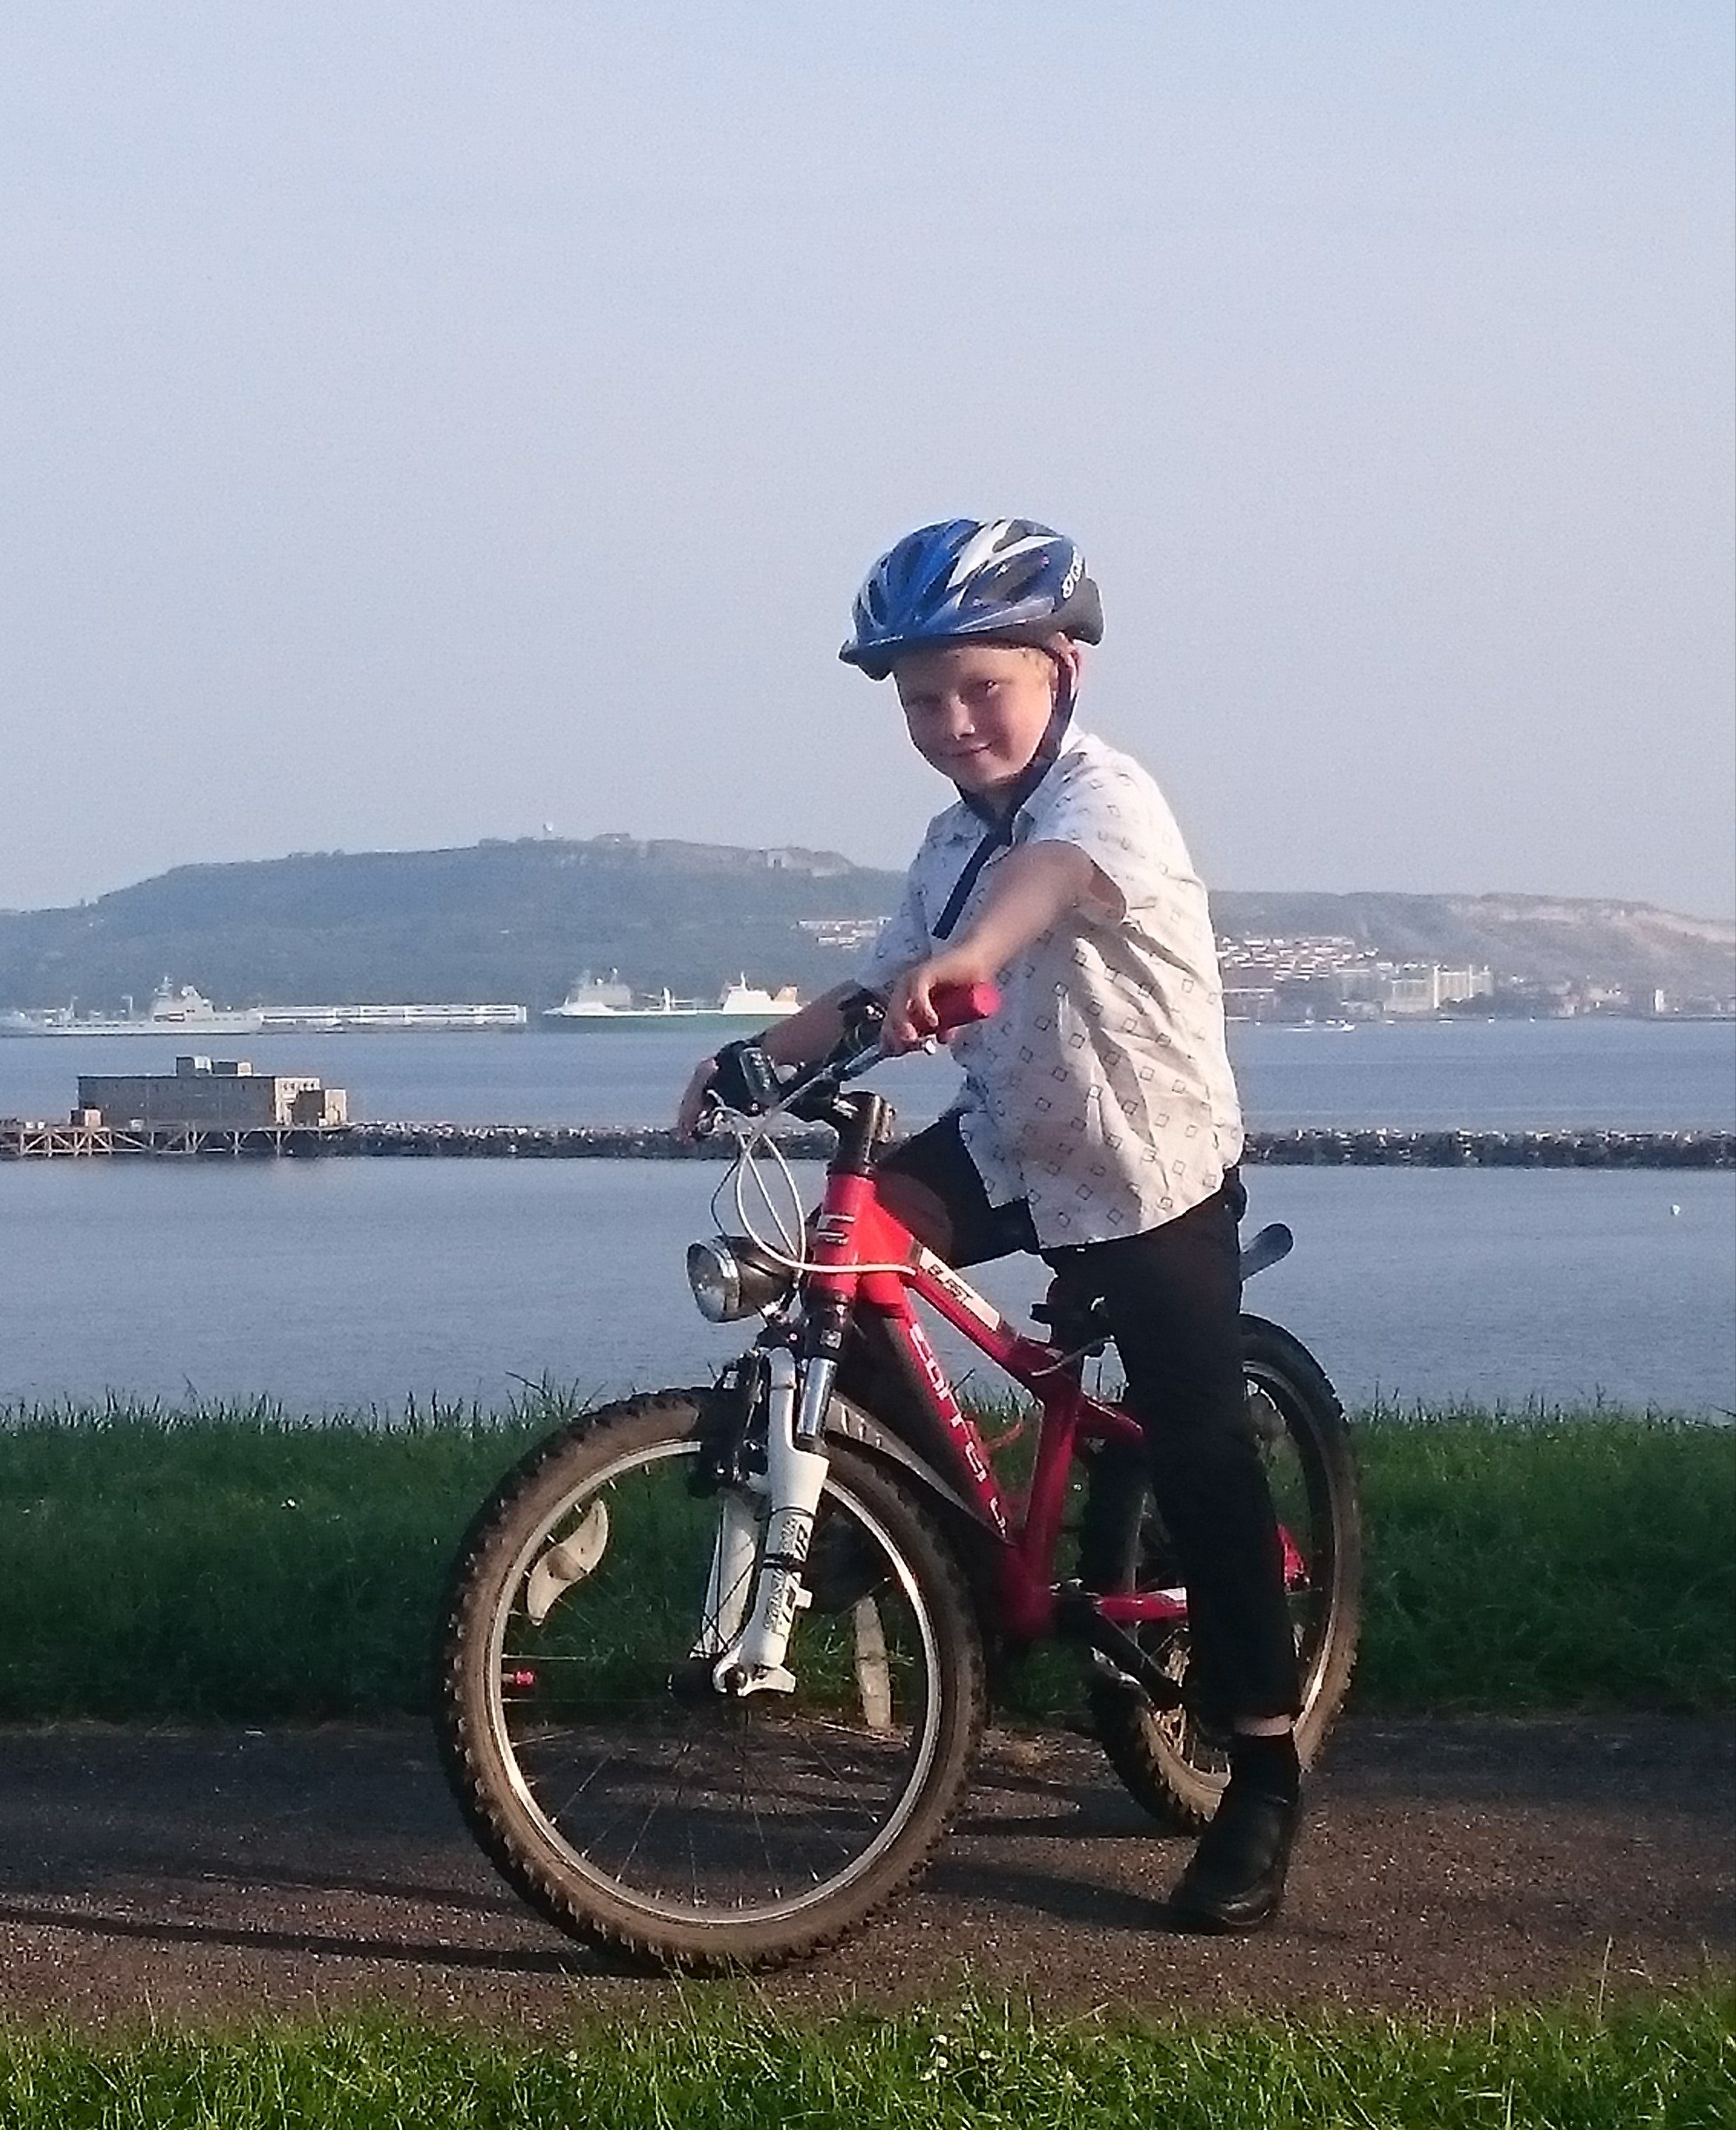 CYCLE CHALLENGE: Eight-year-old William Brook, a pupil at Thorner's Primary School, is taking on a 10-mile cycle ride to raise money for his school.